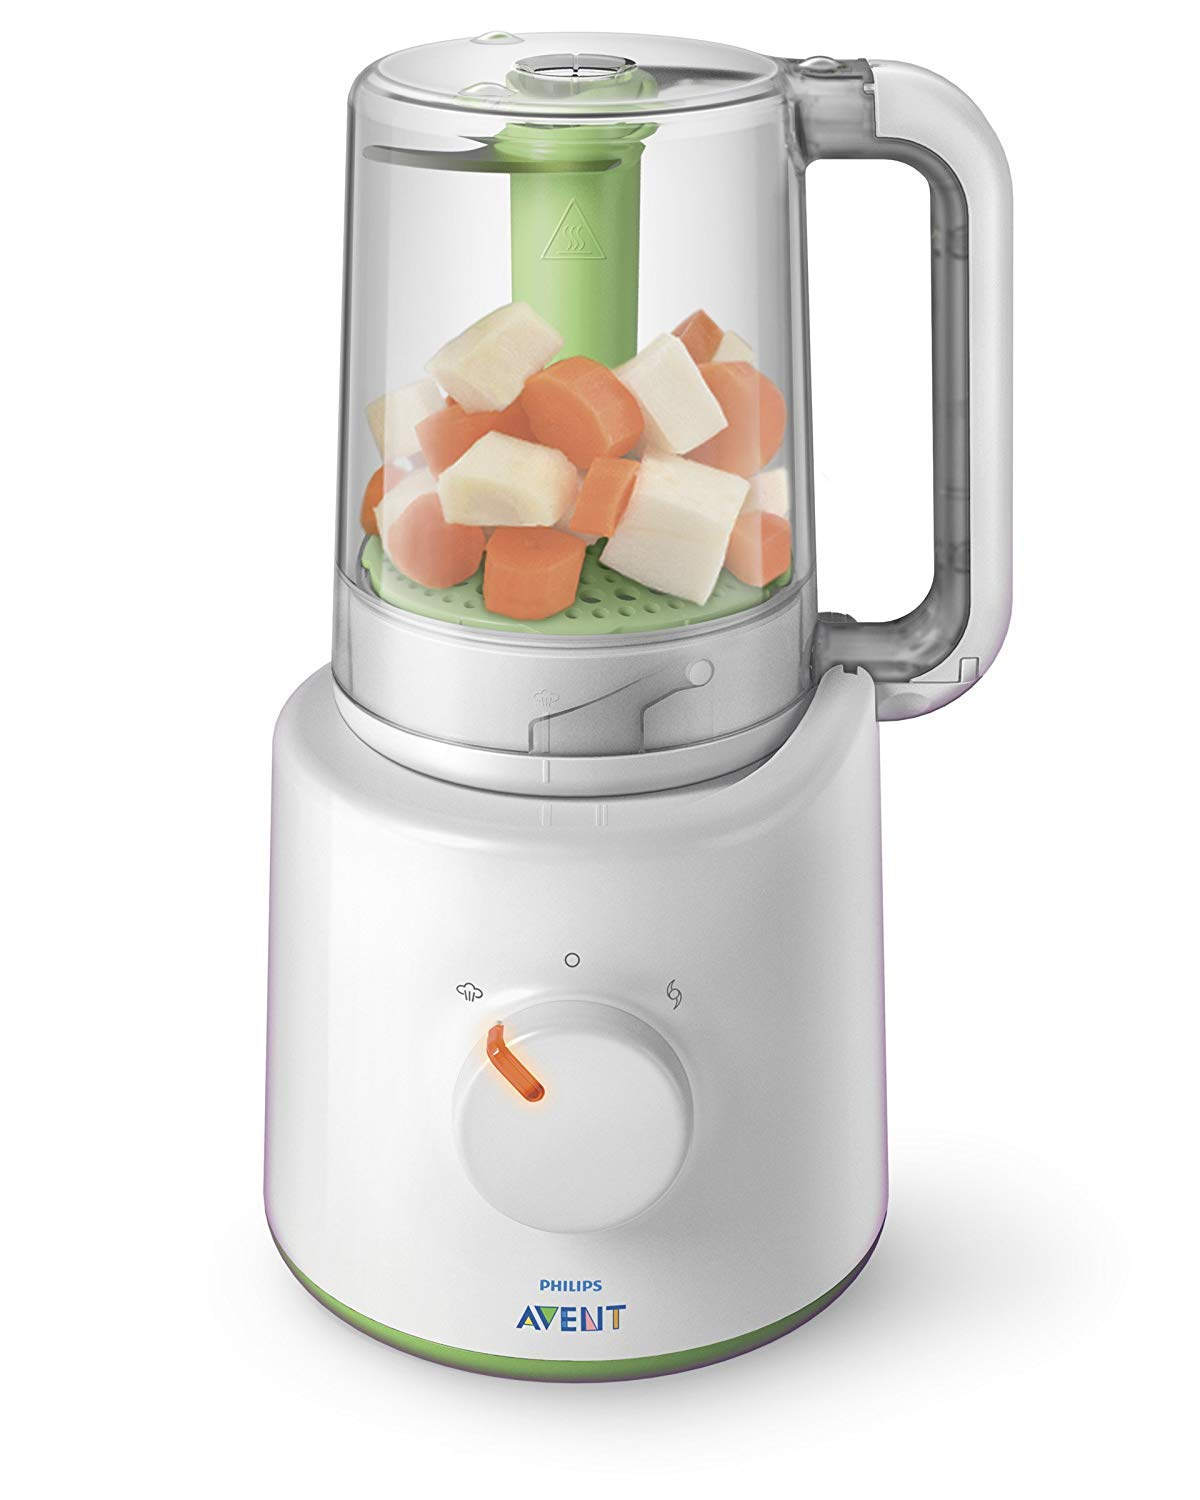 Avent 2 in 1